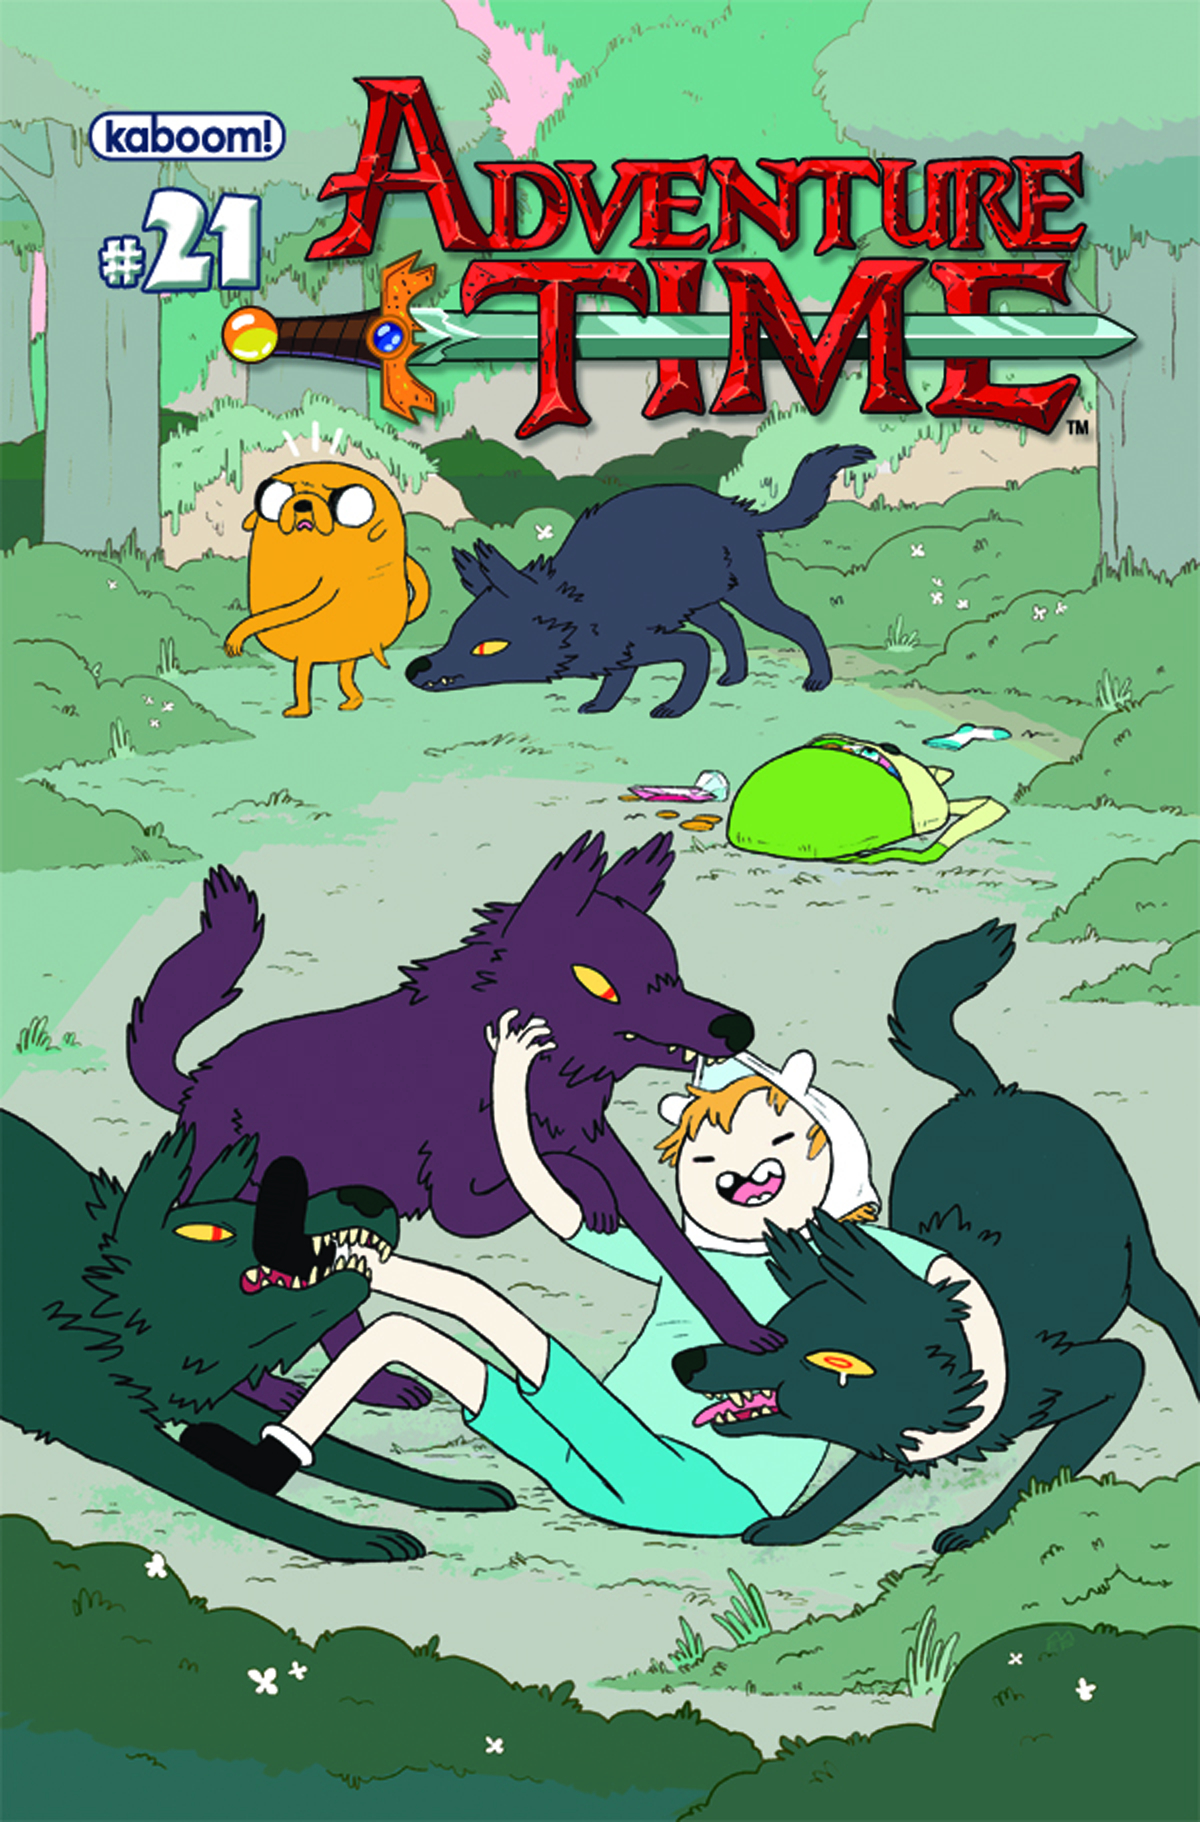 ADVENTURE TIME #21 MAIN CVRS